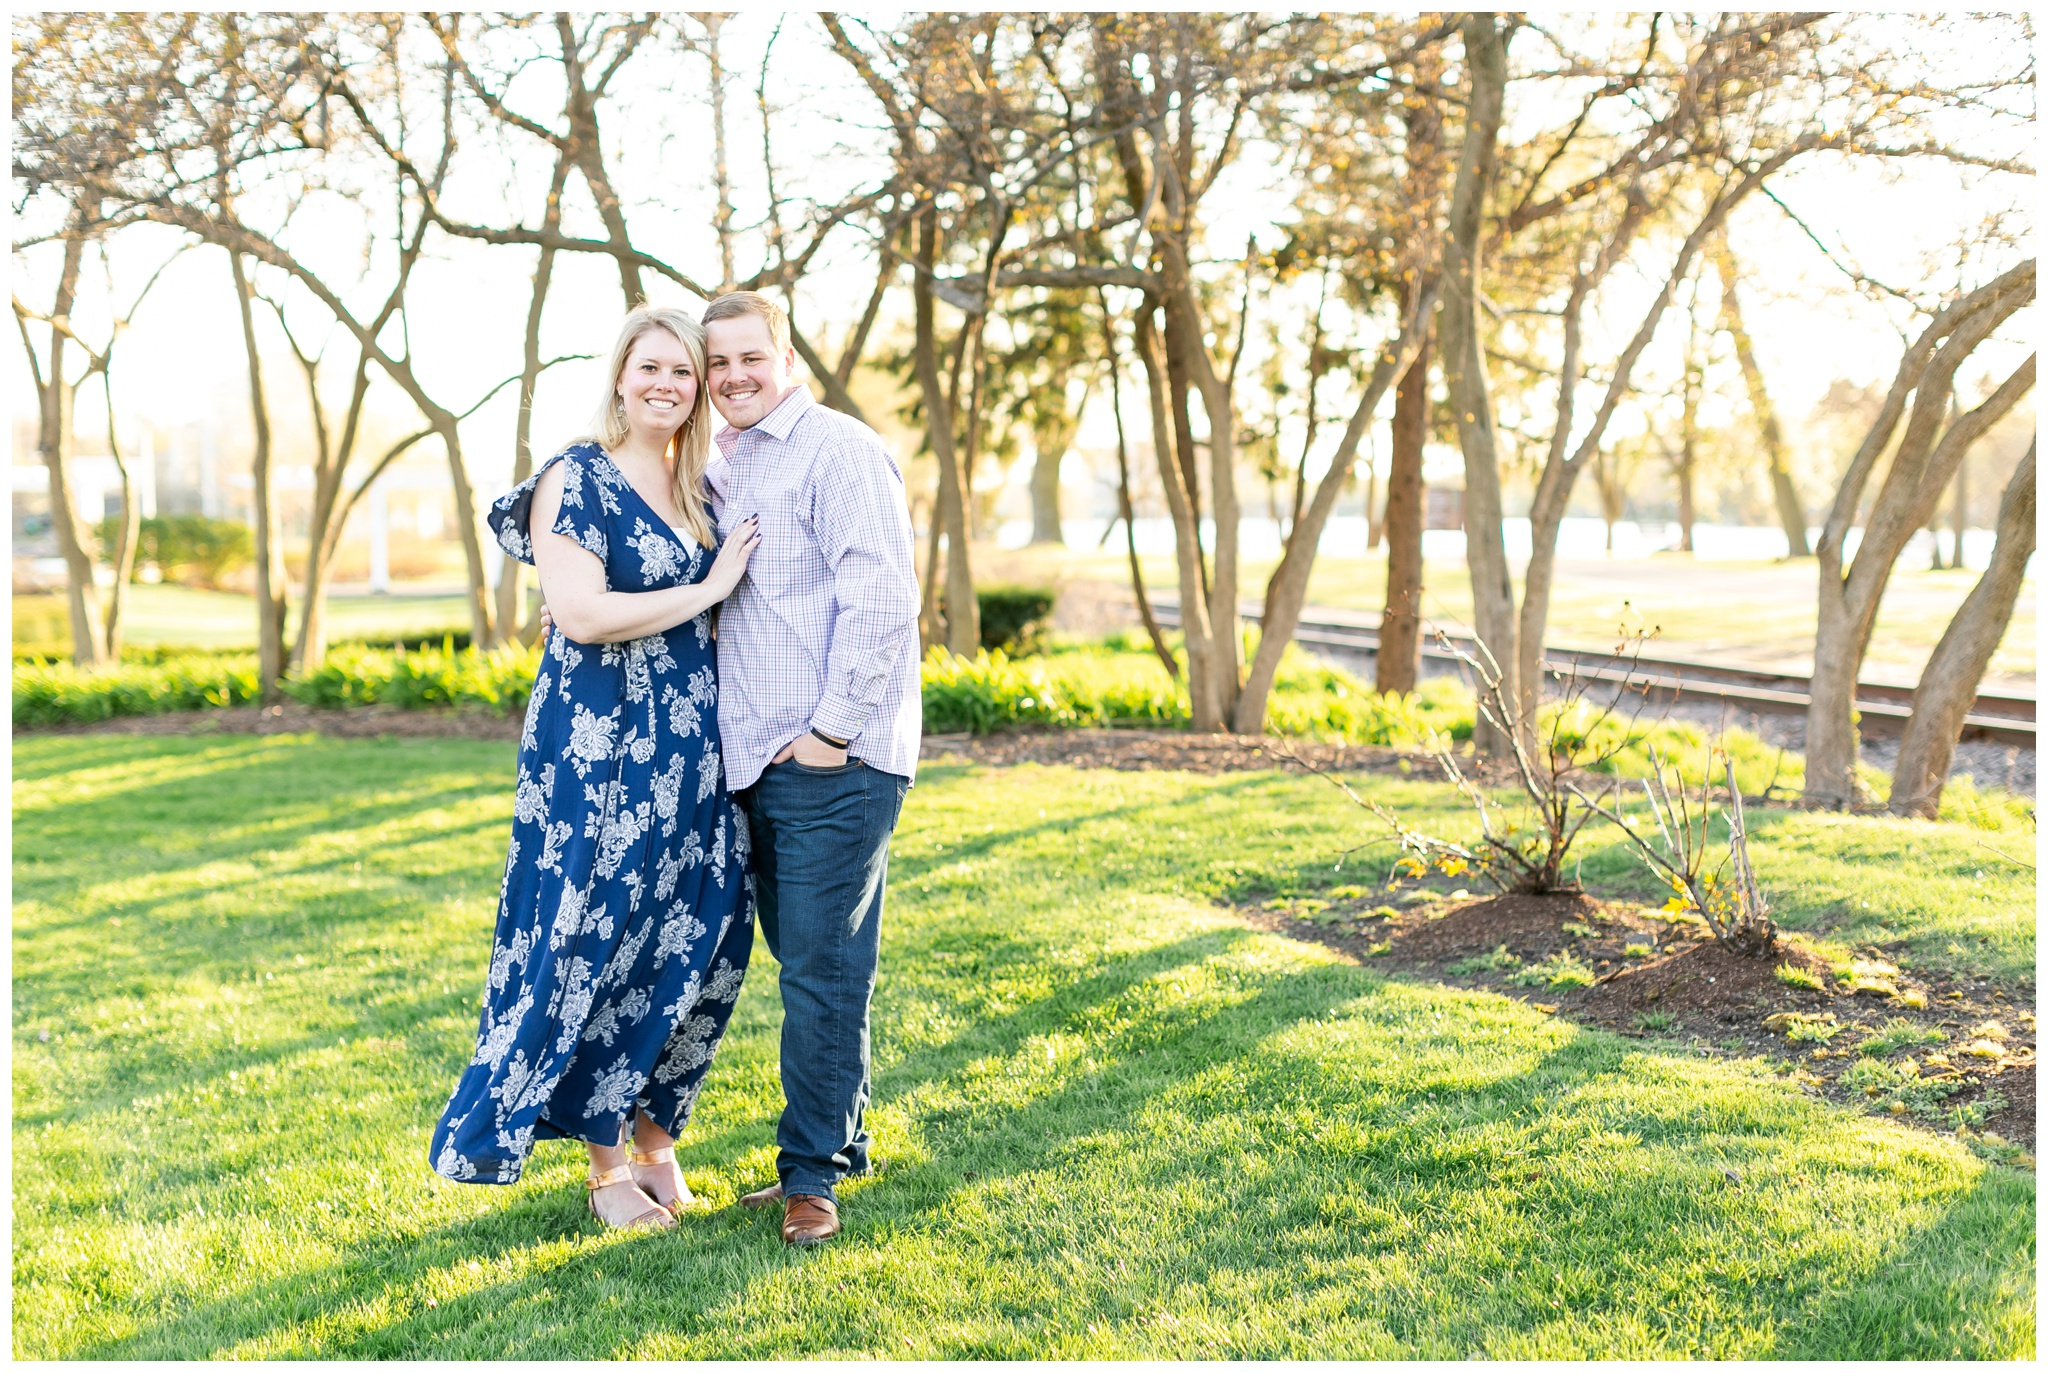 nicholas_conservatory_engagement_session_rockford_illinois_caynay_photo_2989.jpg